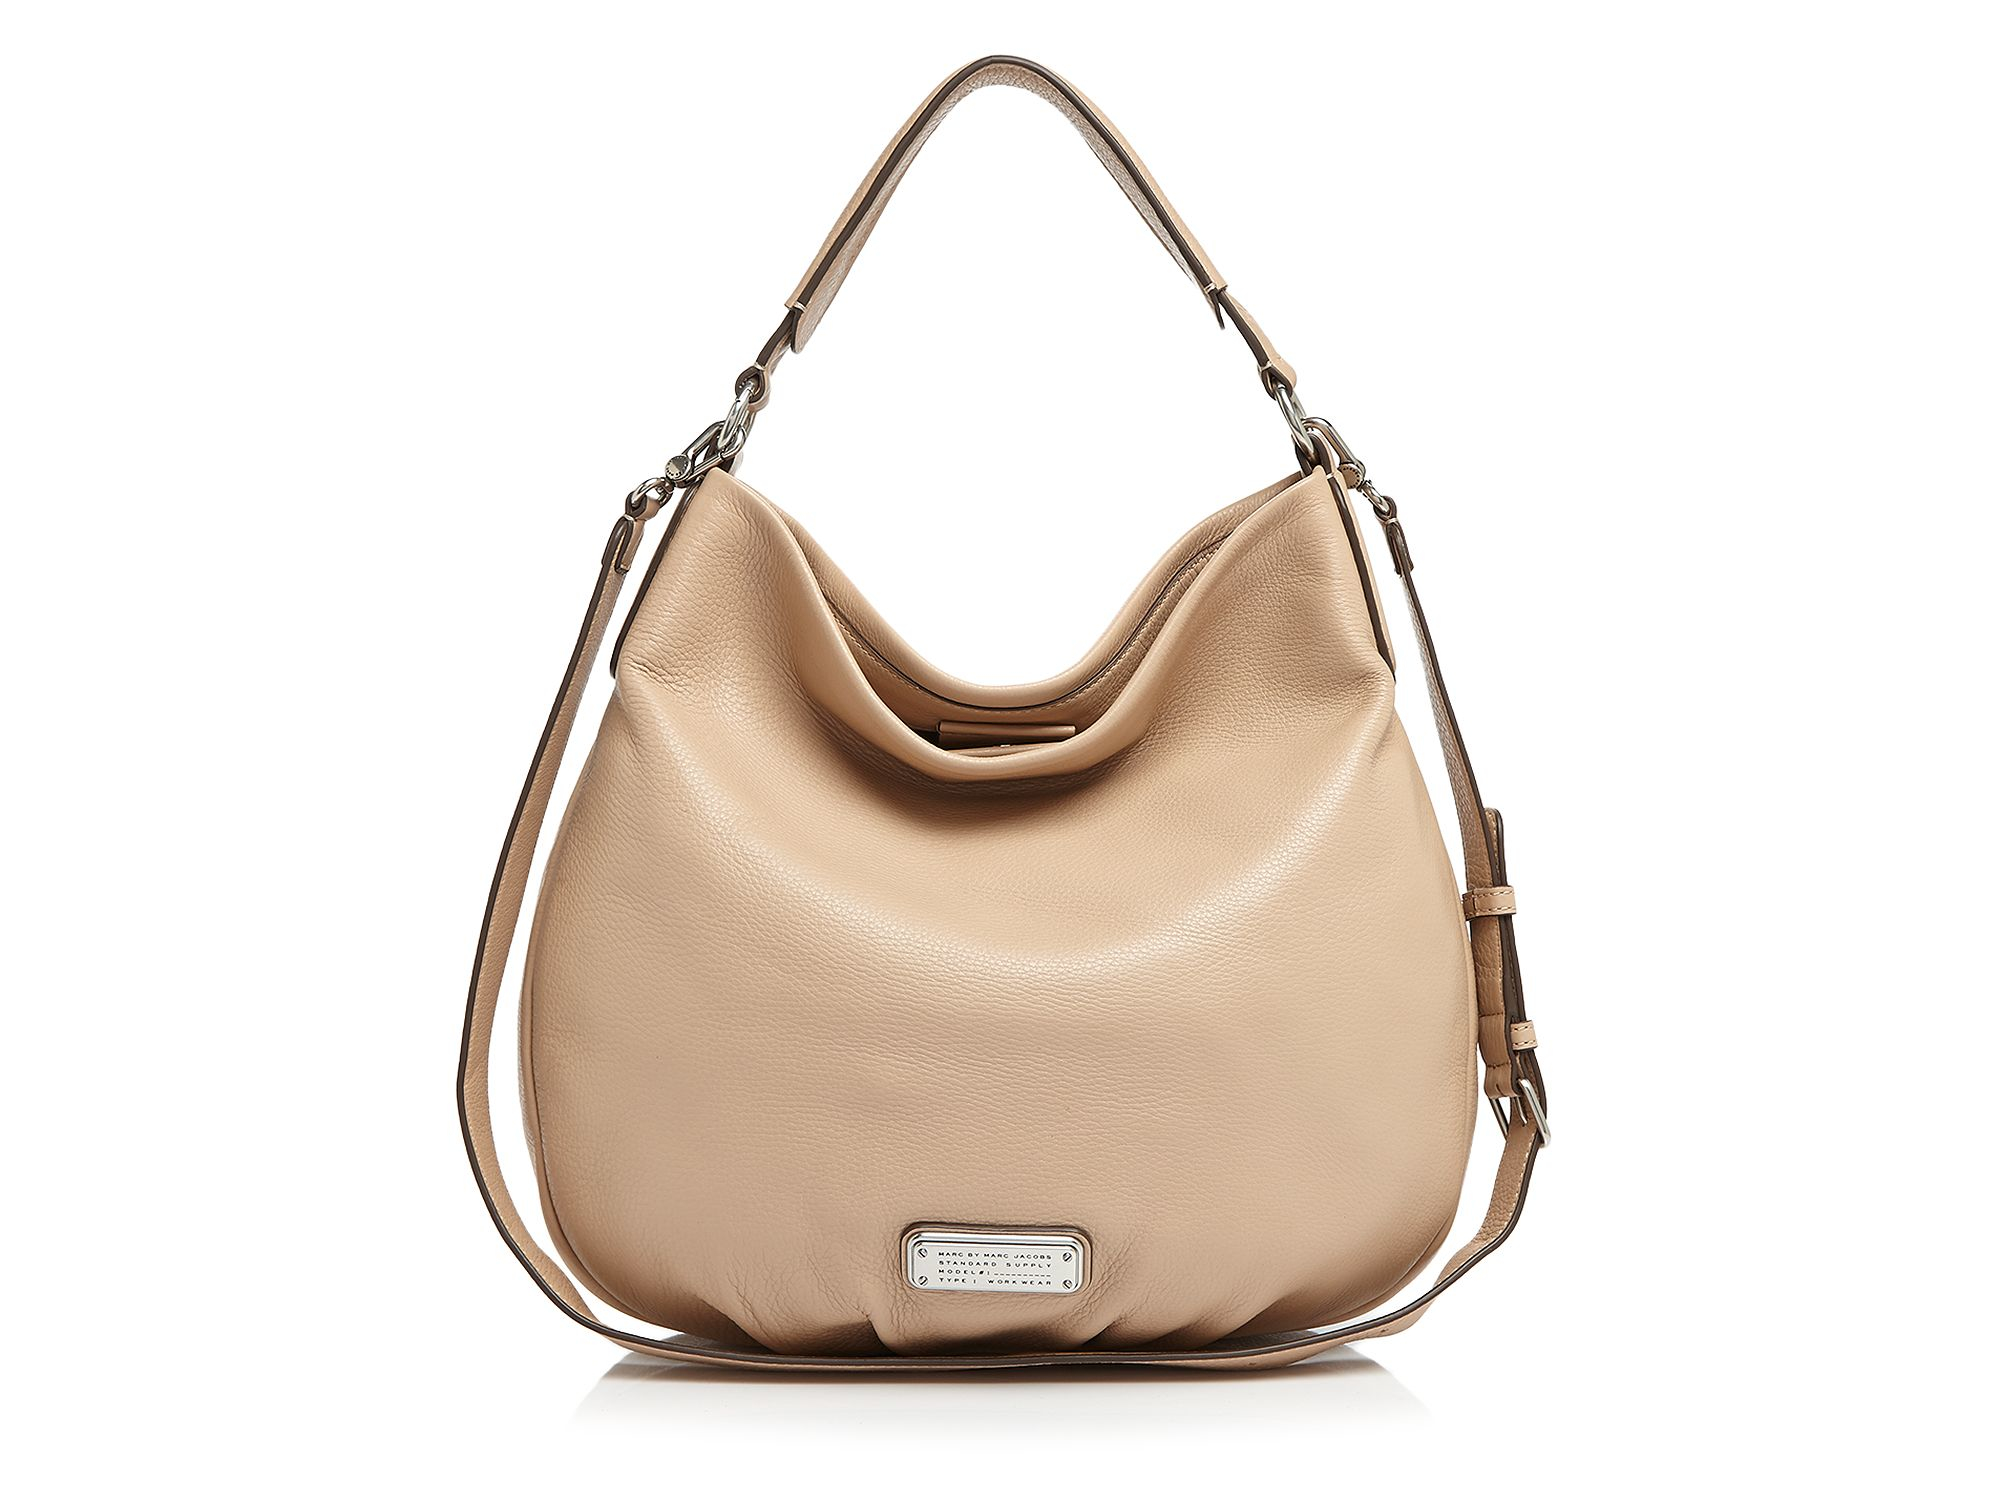 709c0b98d9b9 Marc By Marc Jacobs Hobo - New Q Hillier in Natural - Lyst